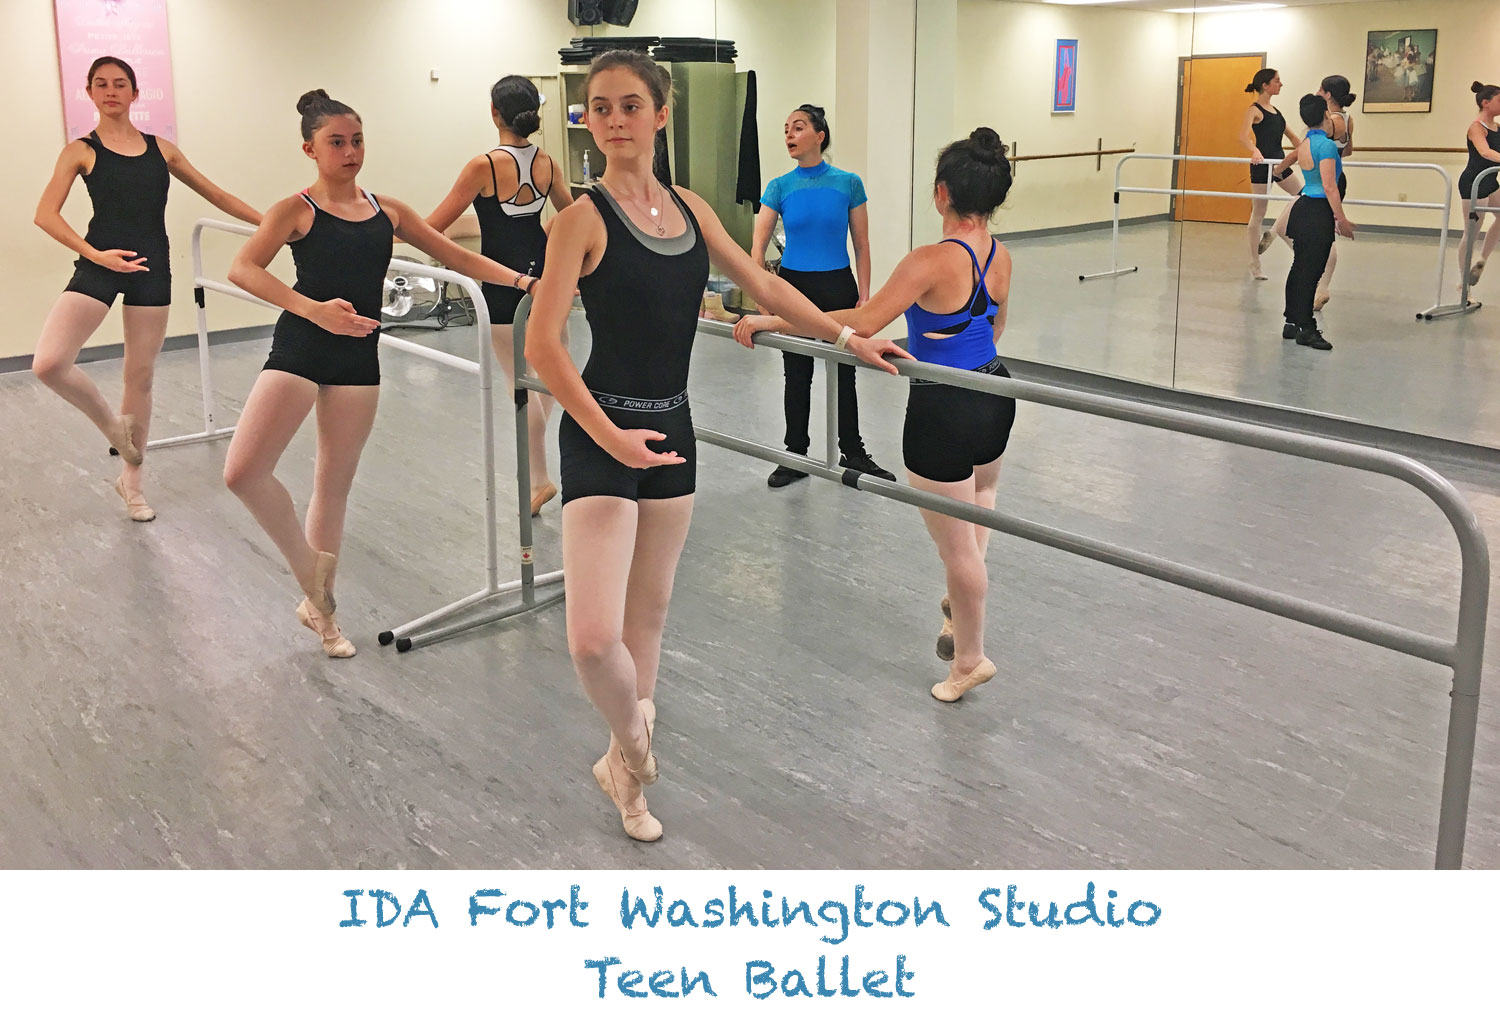 IDA, Institute of Dance Artistry Children's Fort Washington PA studio provides Ballet classes. This IDA studio also services Dresher, Upper Dublin, Ambler, Horsham, and Springfield Township PA.